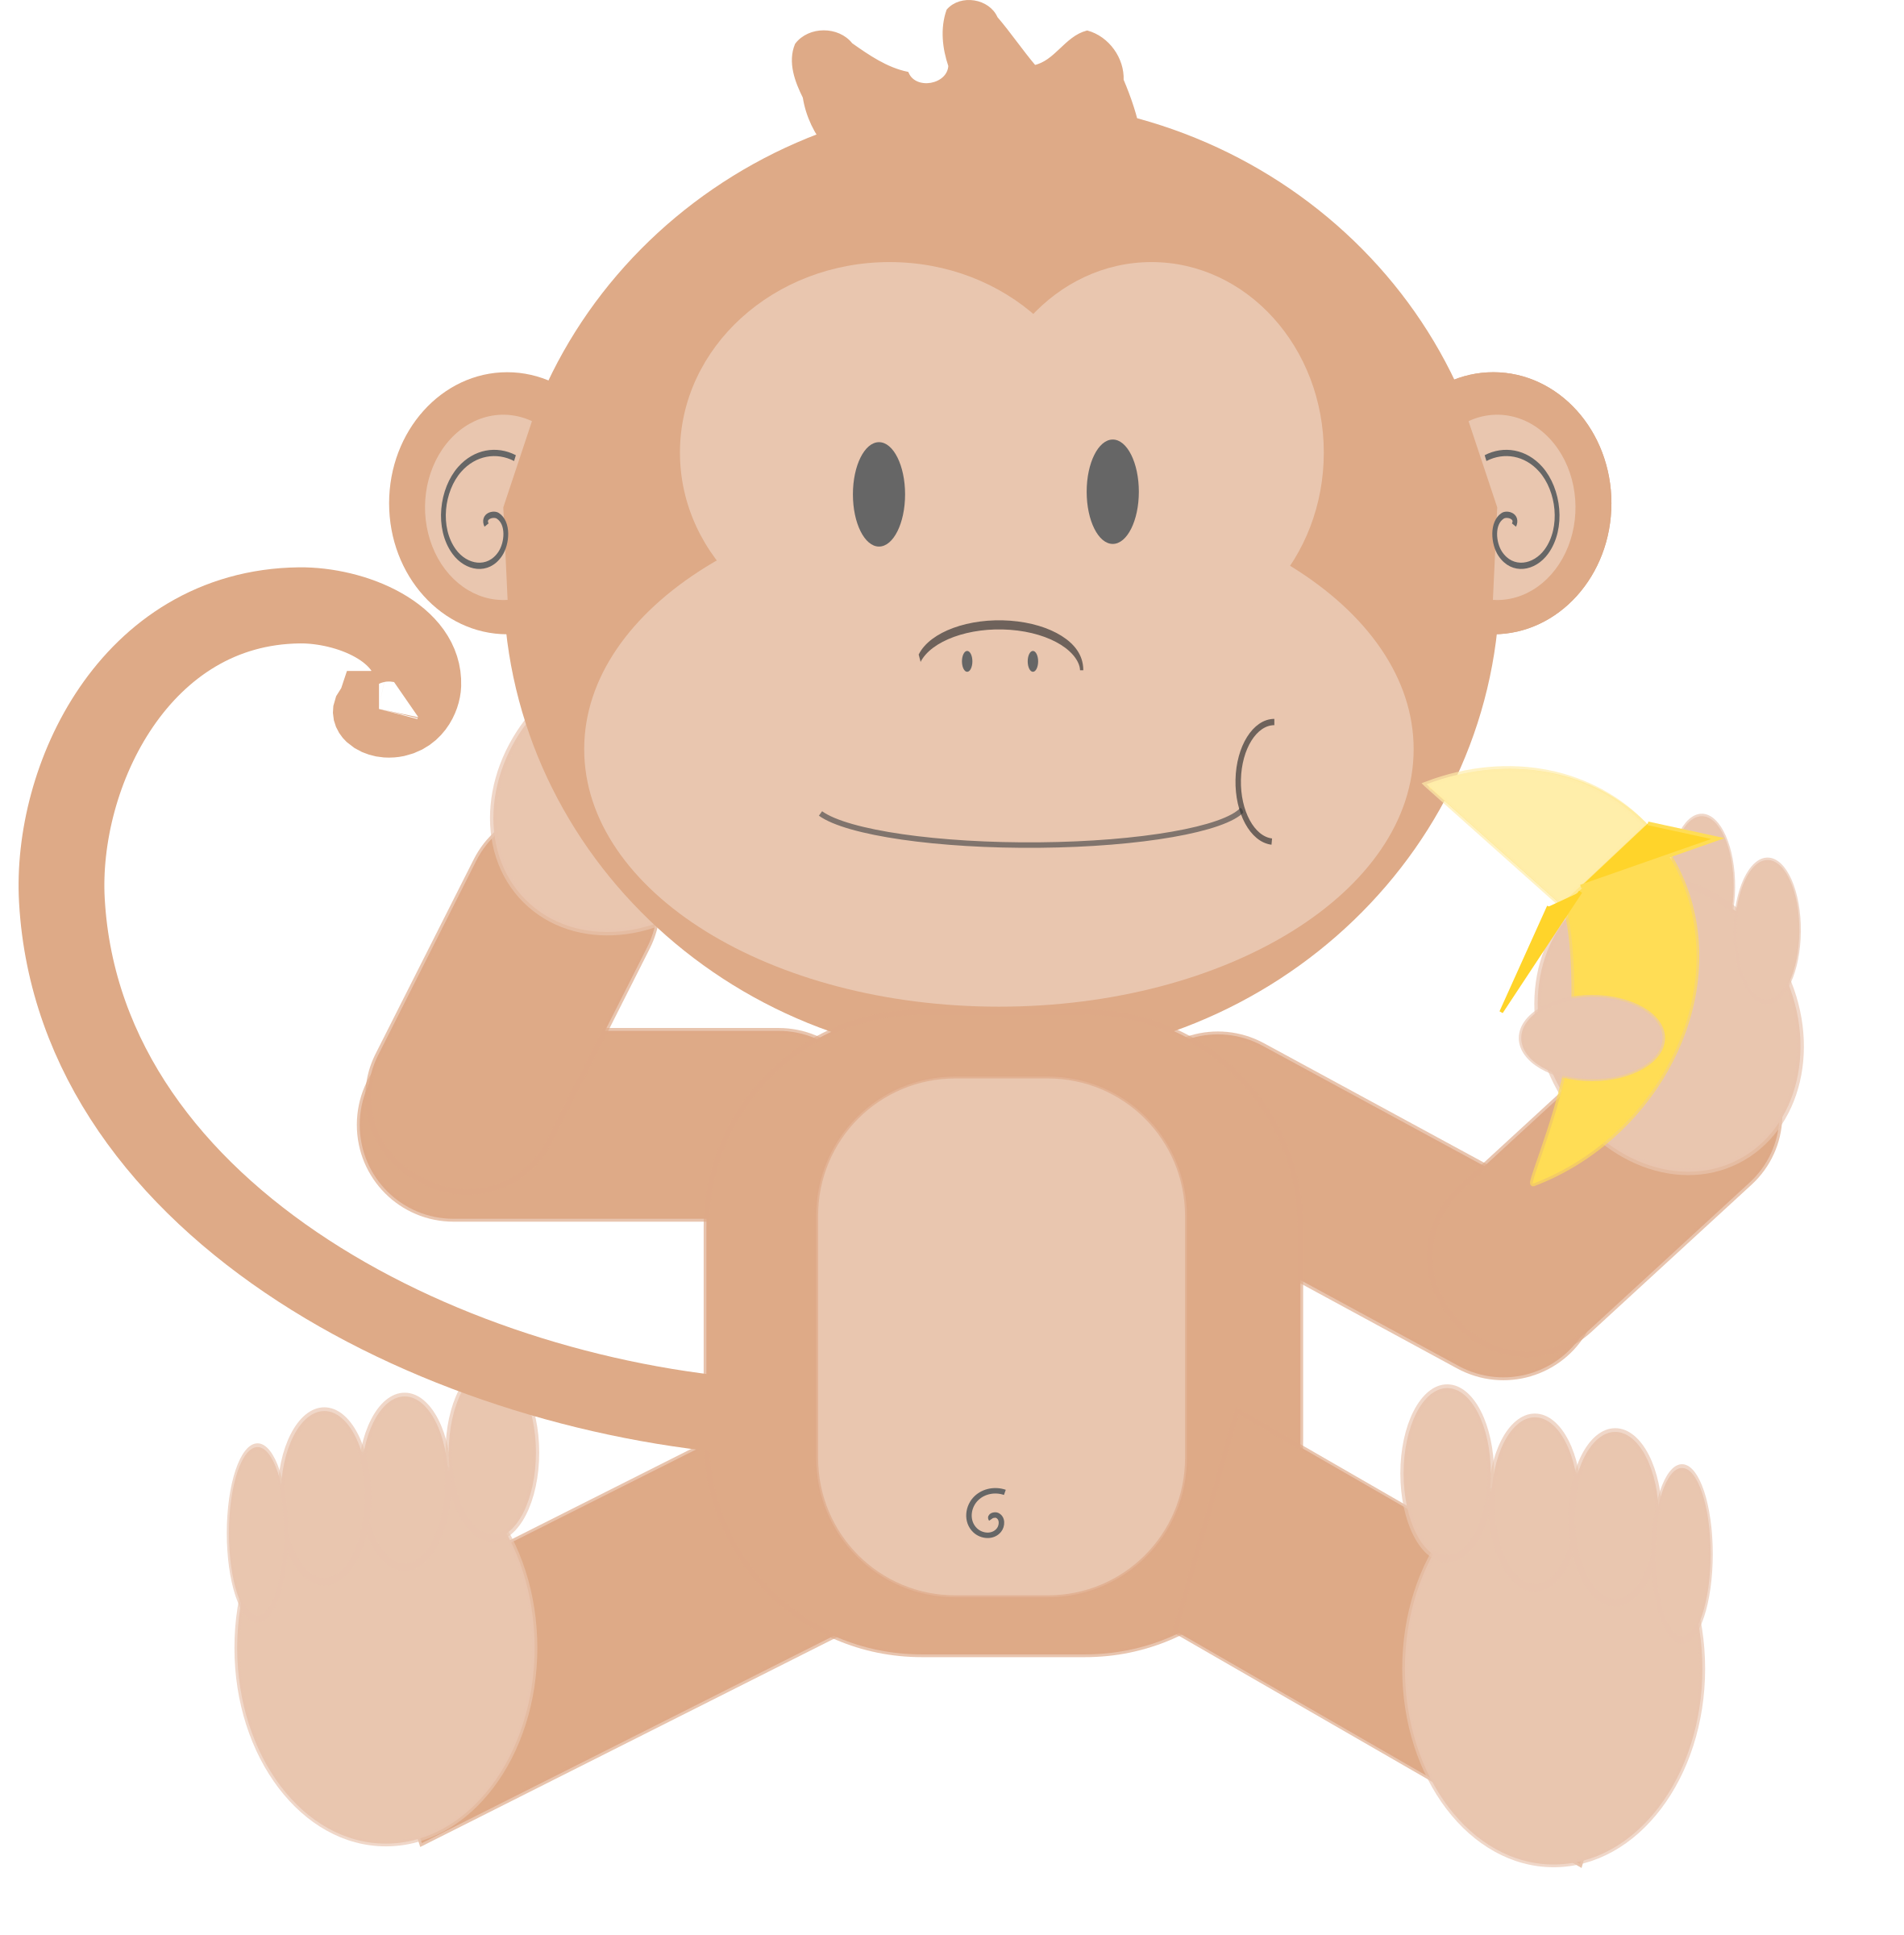 monkey cartoon wallpaper - photo #28